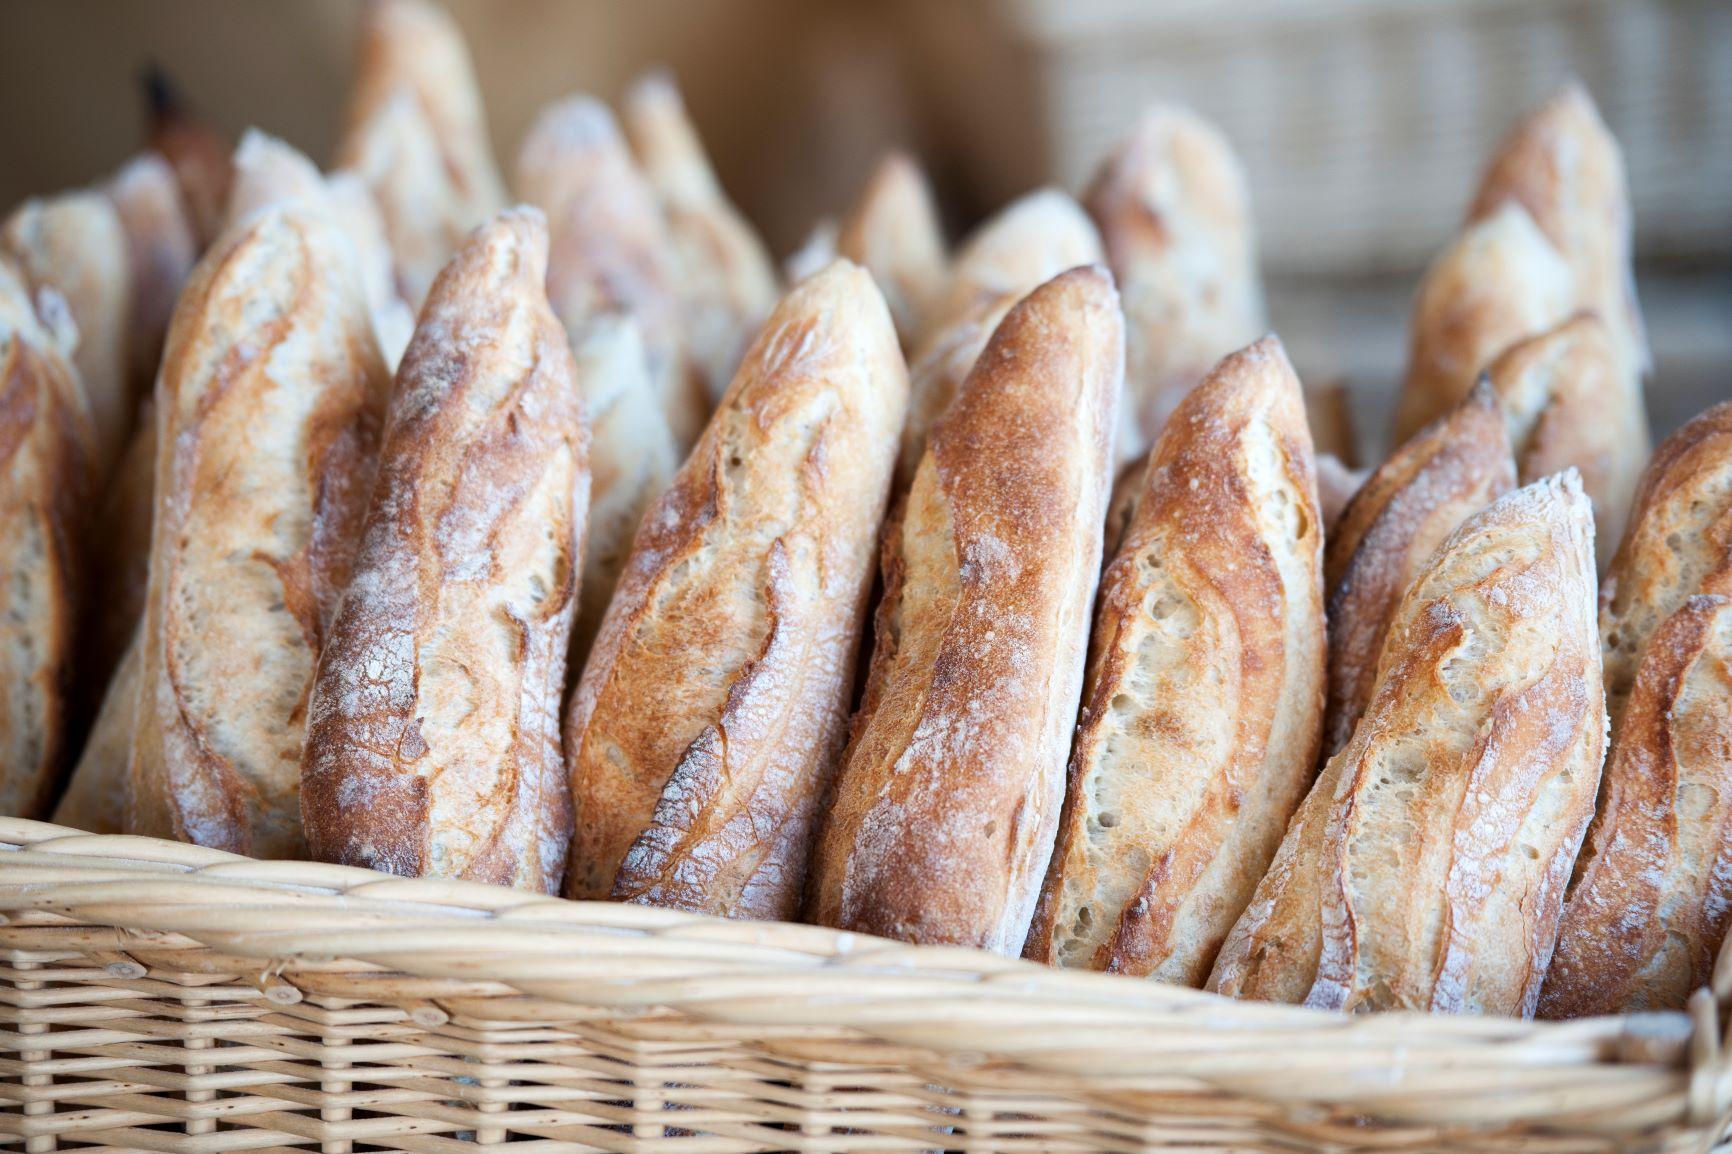 Baguette En Bois Decorative everything you need to know about french bread in 5 minutes